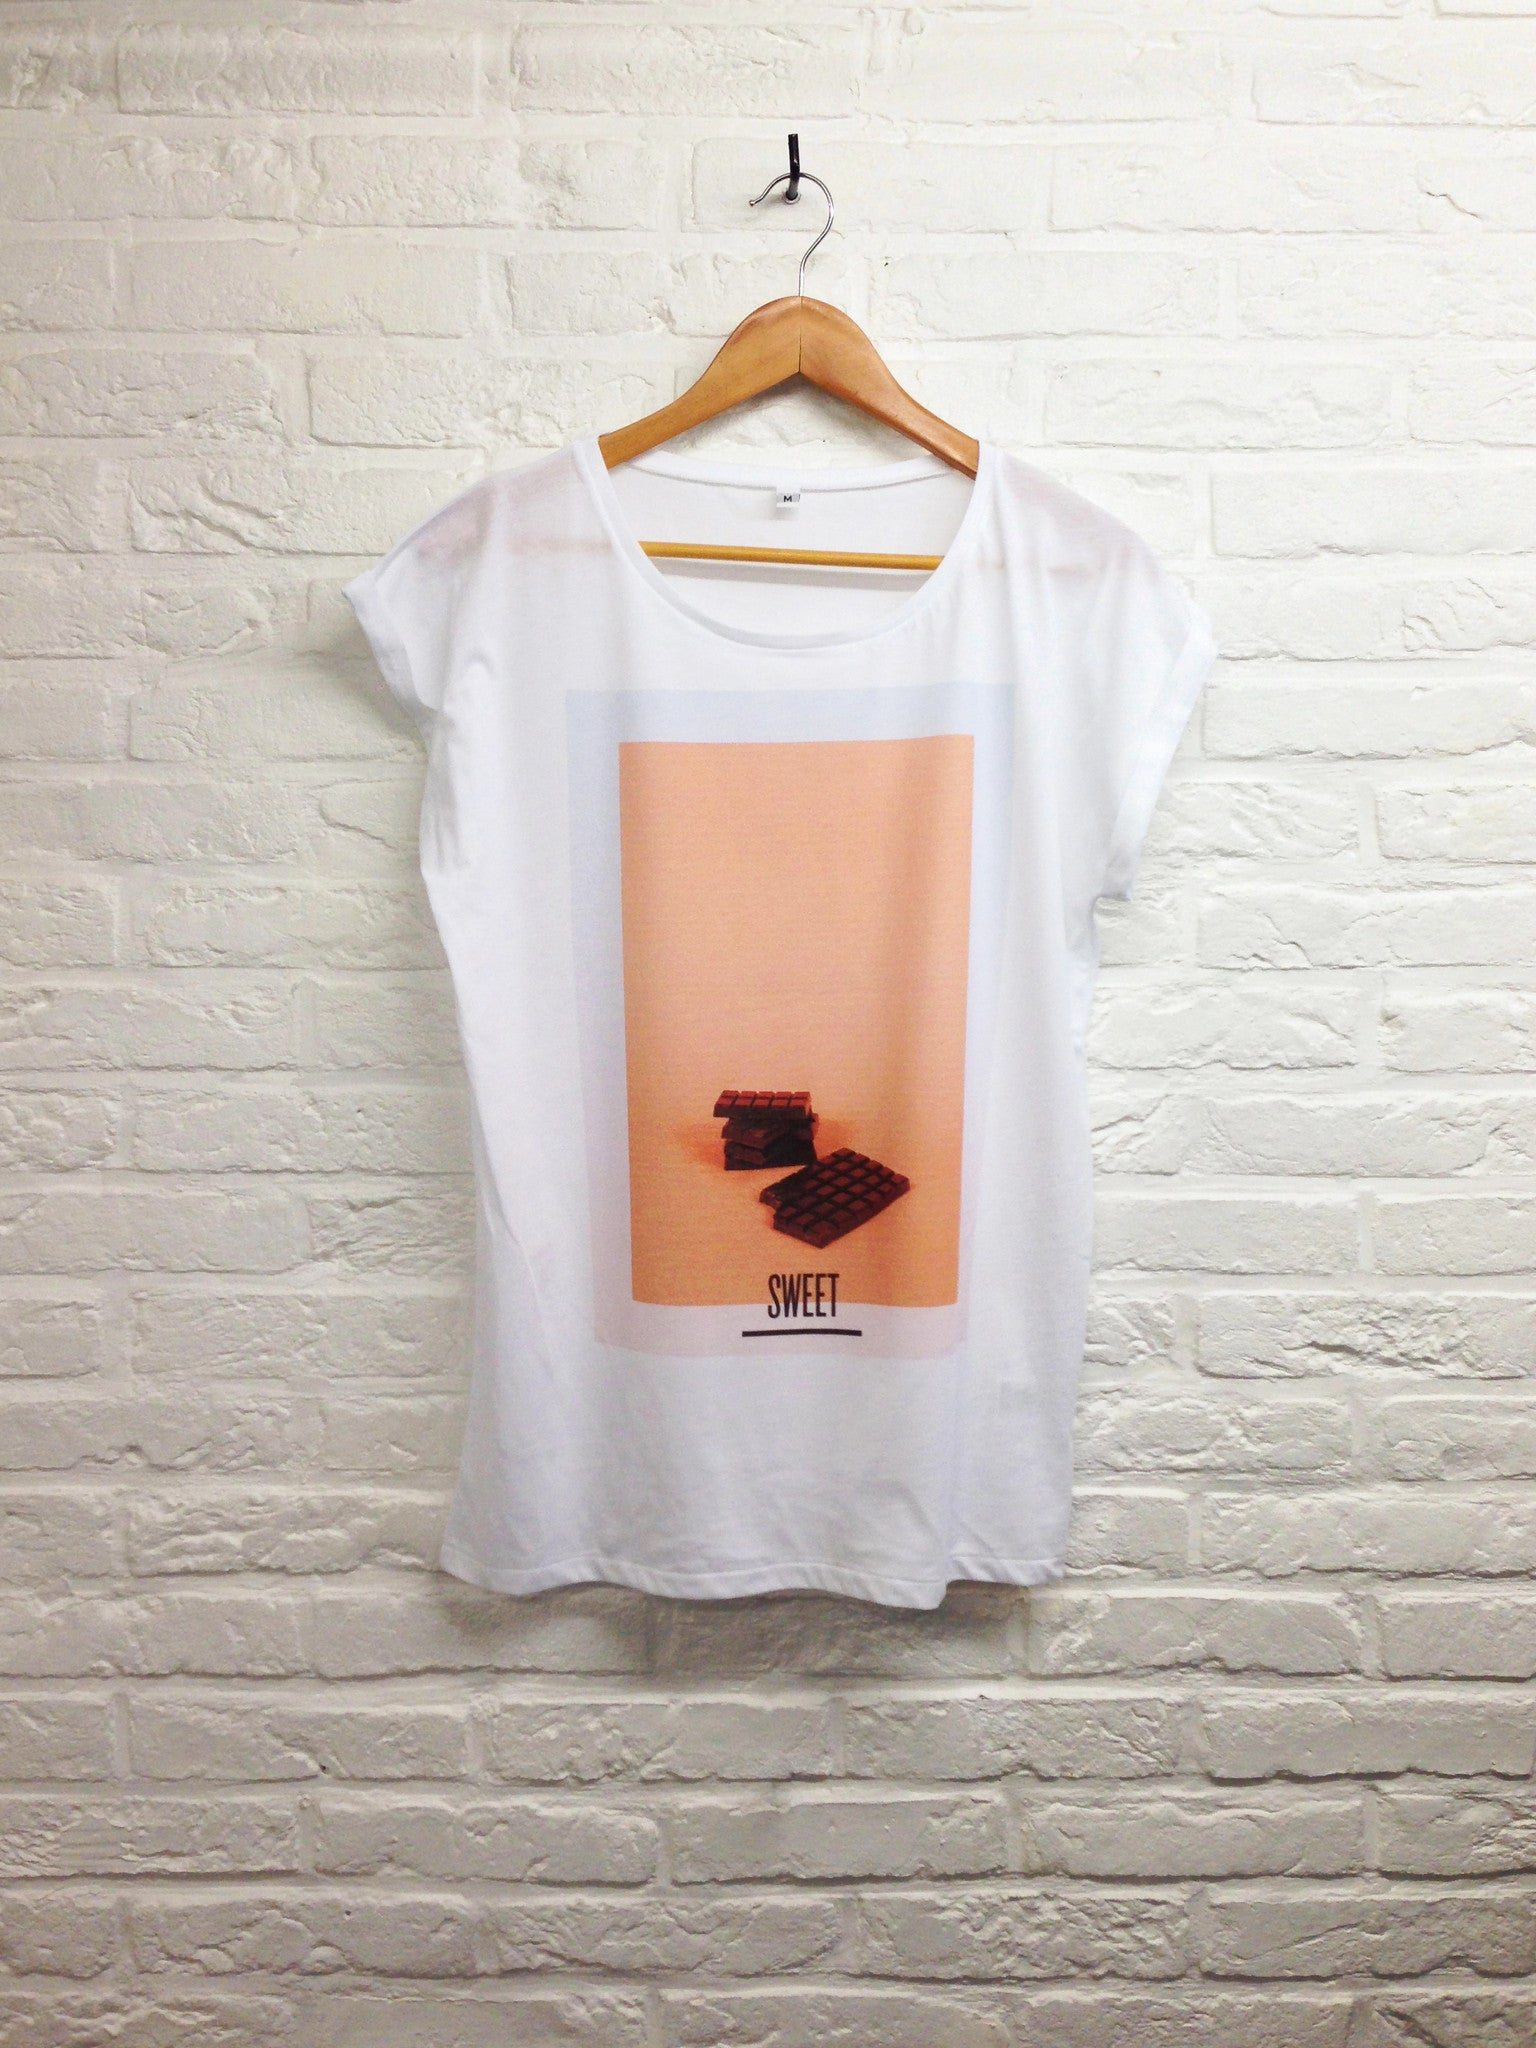 TH Gallery - Sweet - Femme-T shirt-Atelier Amelot